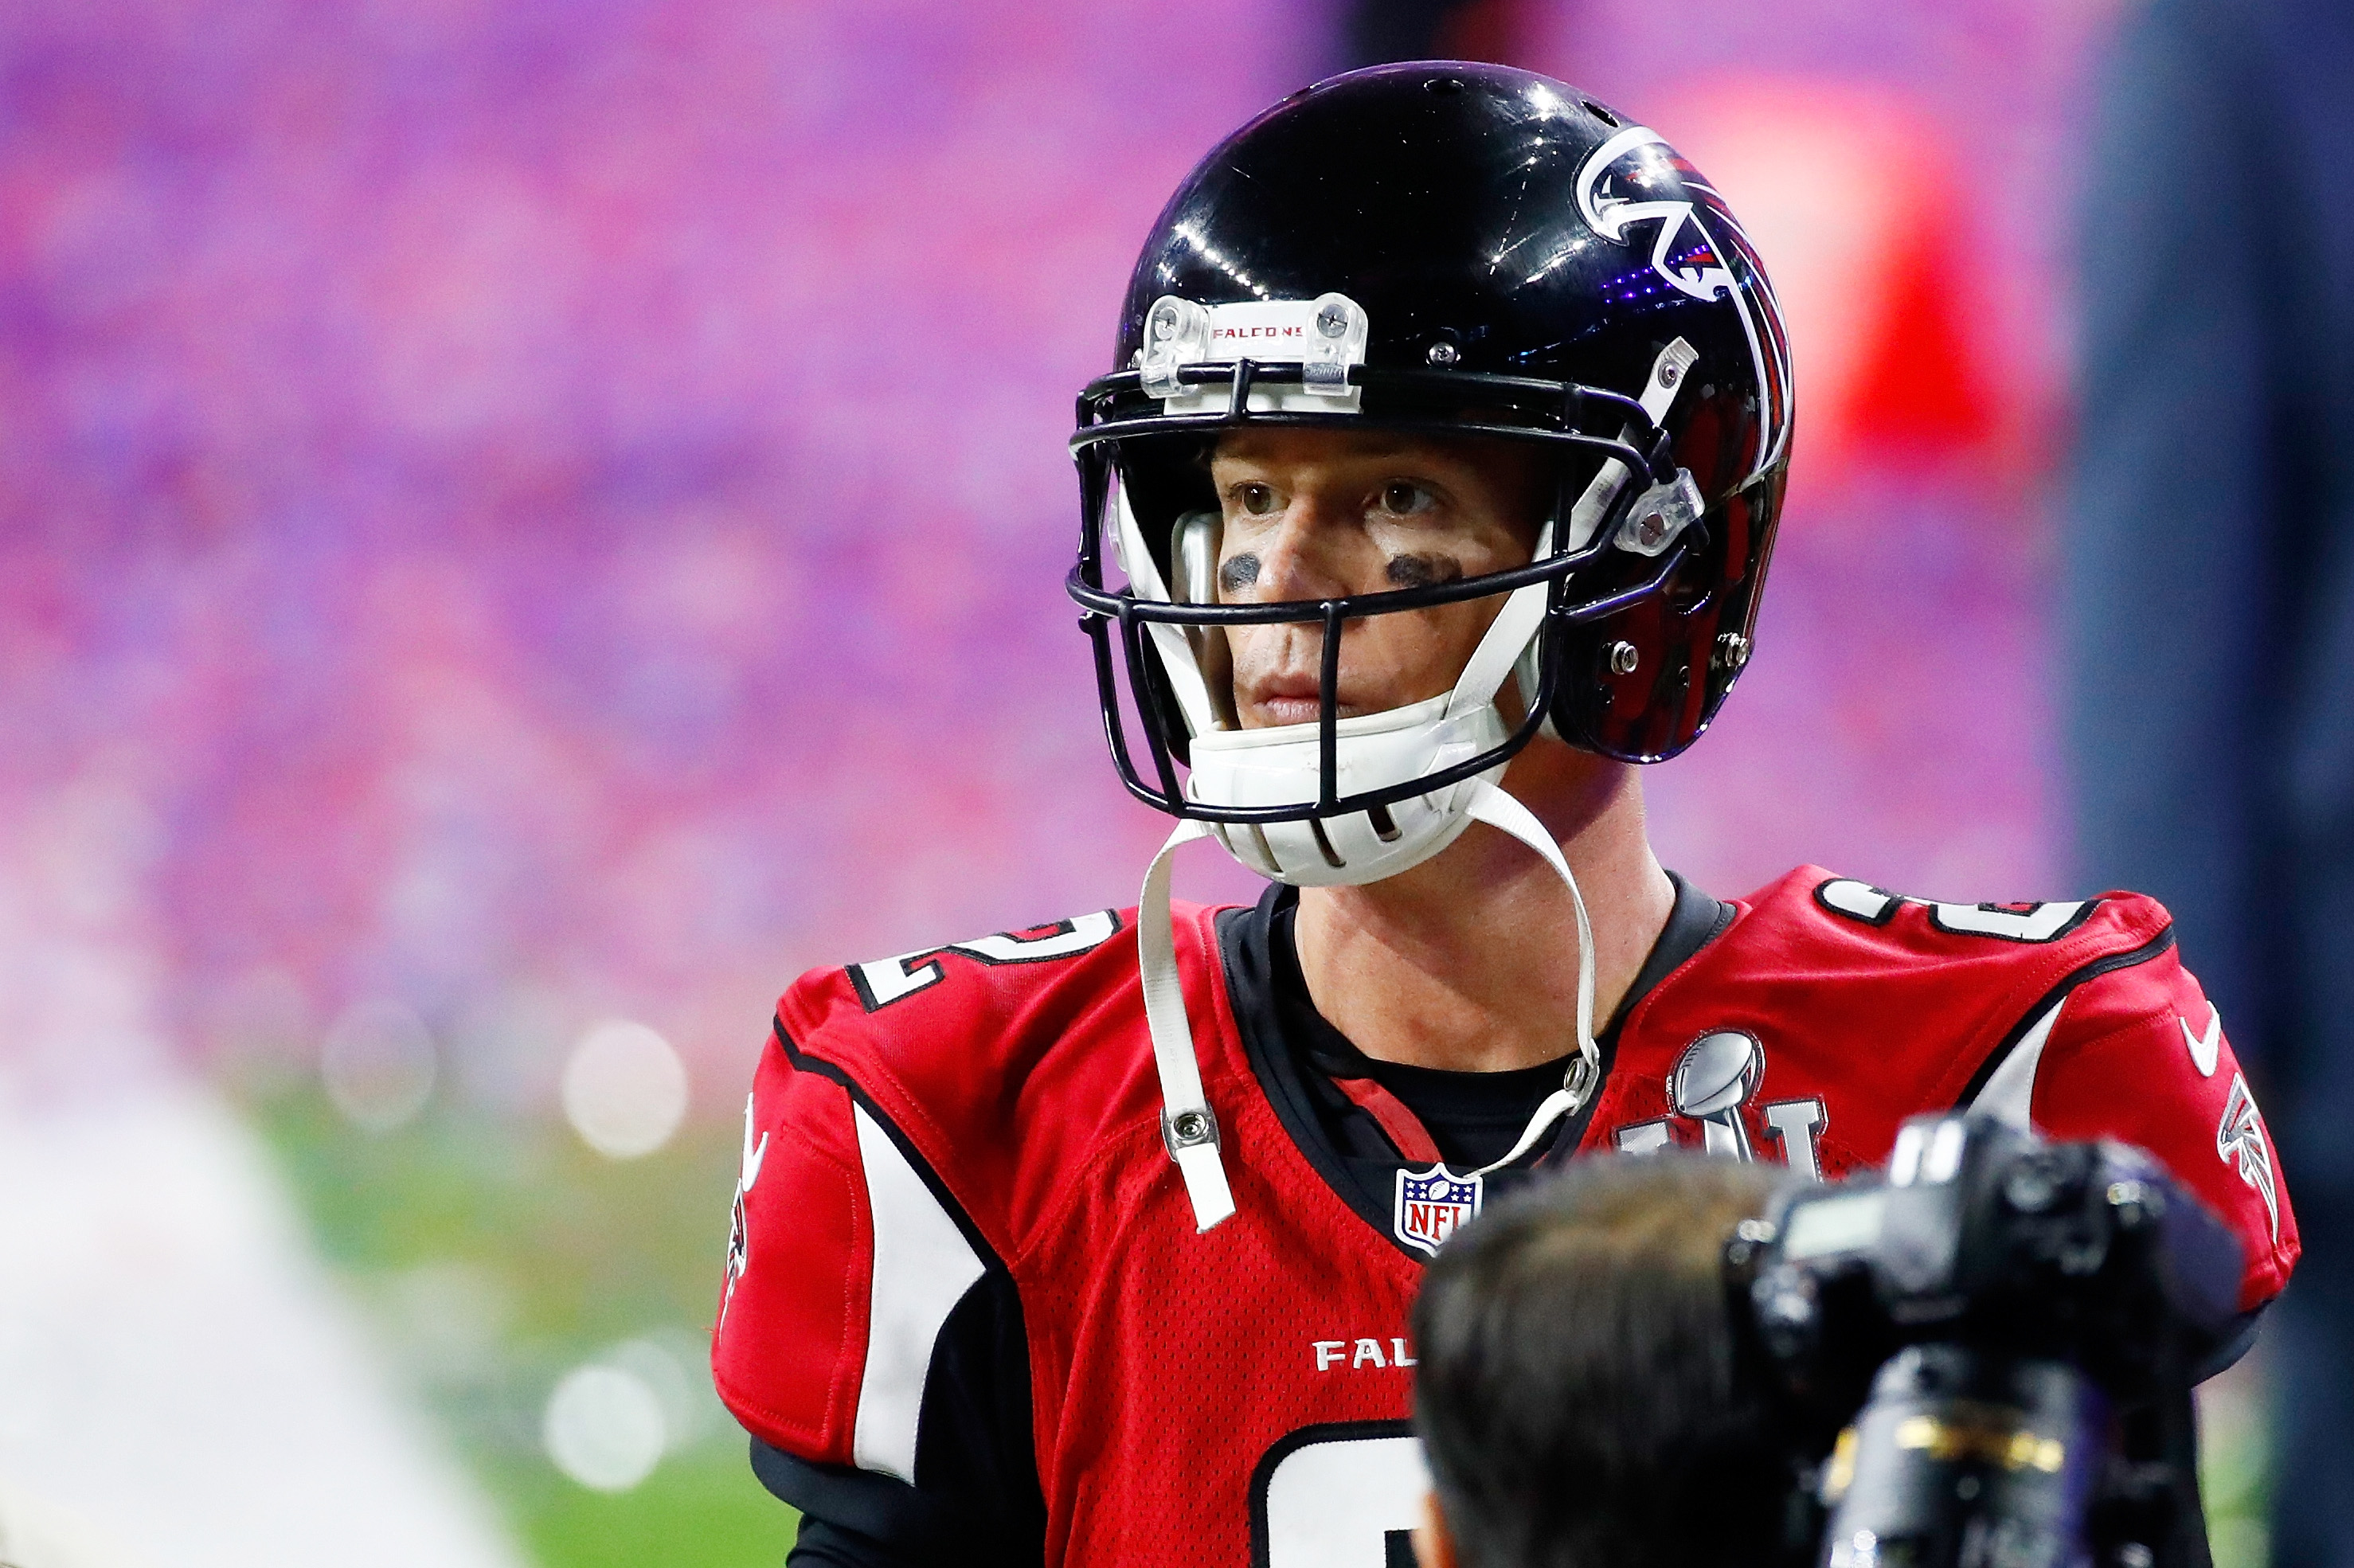 Matt Ryan of the Atlanta Falcons walks off the field after losing Super Bowl LI. (Getty Images)